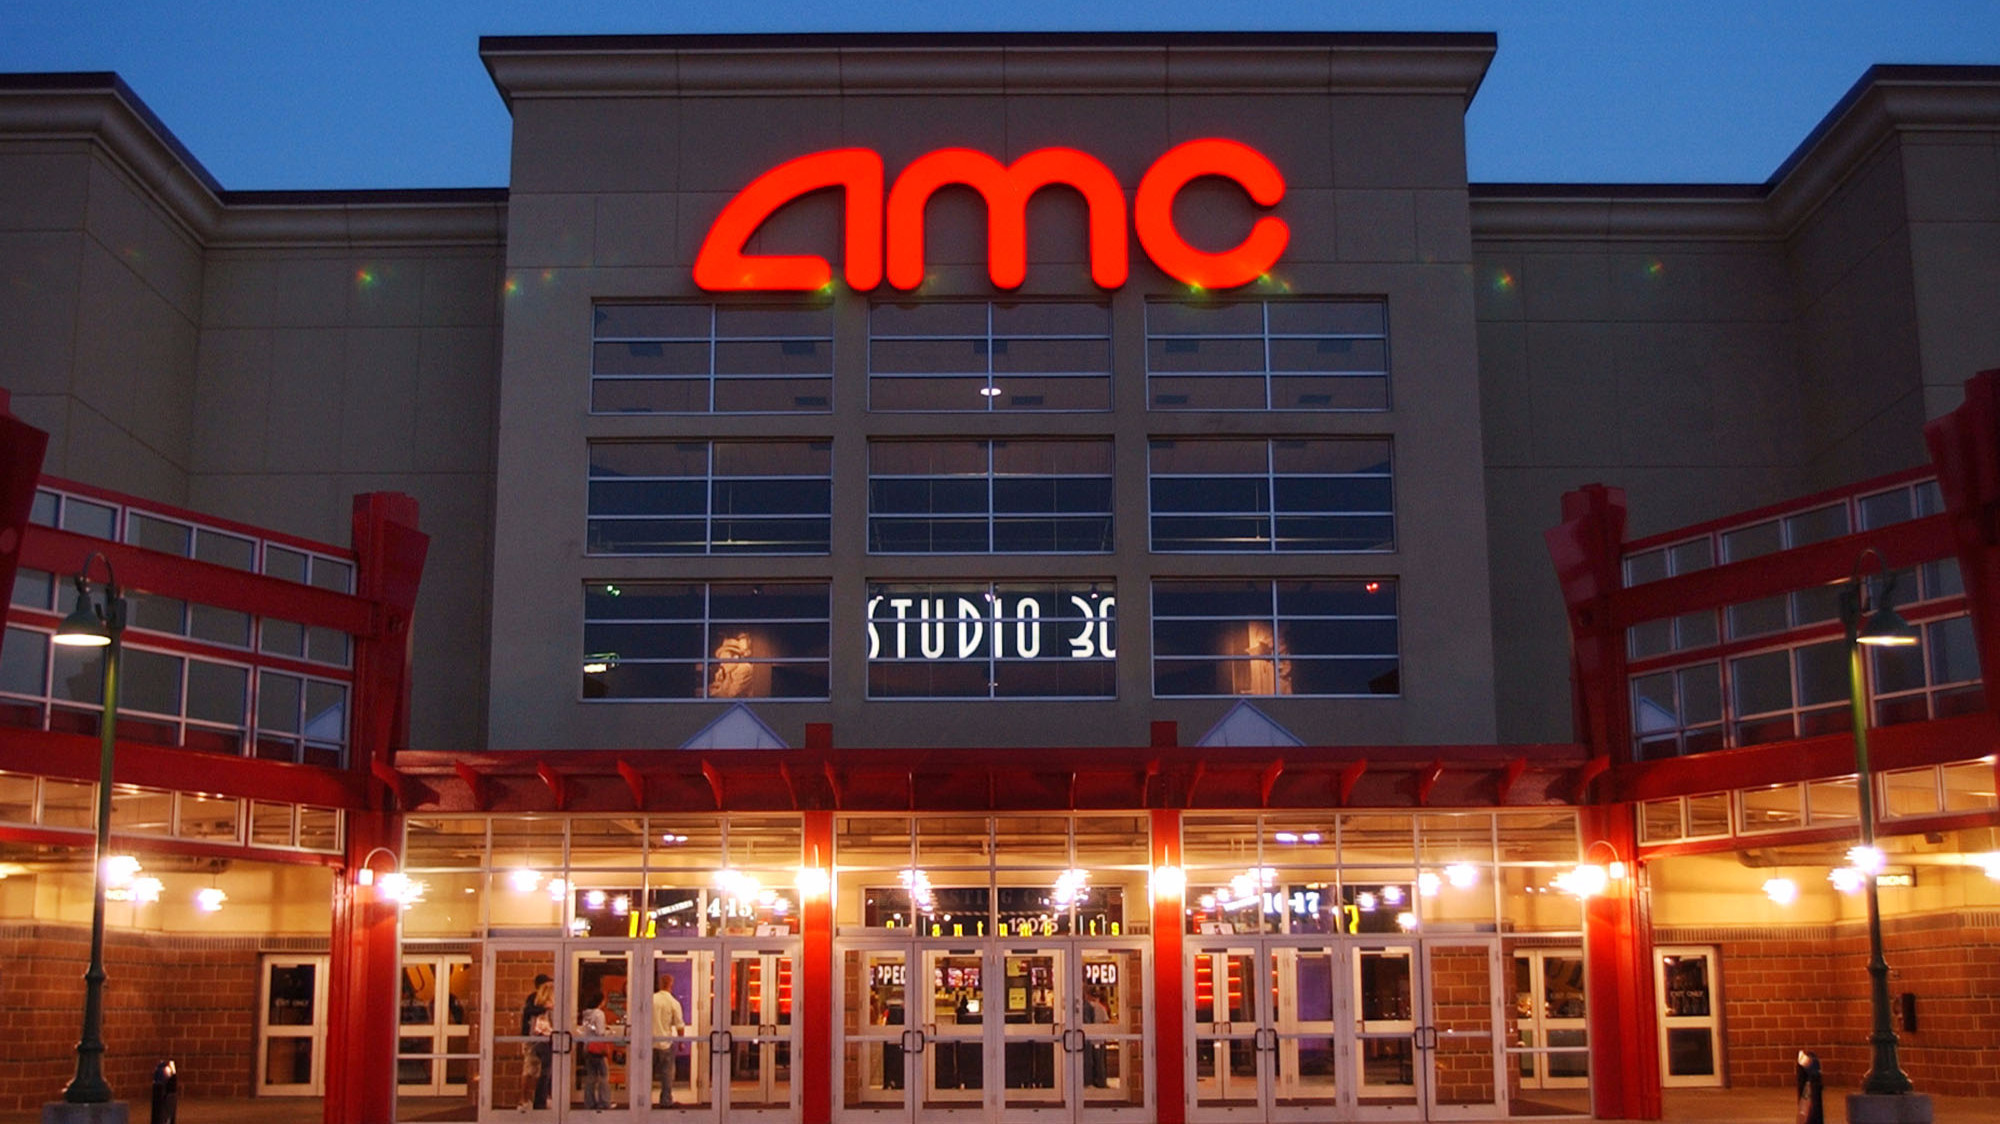 AMC Galaxy 16 in Waco, TX - get movie showtimes and tickets online, movie information and more from Moviefone.